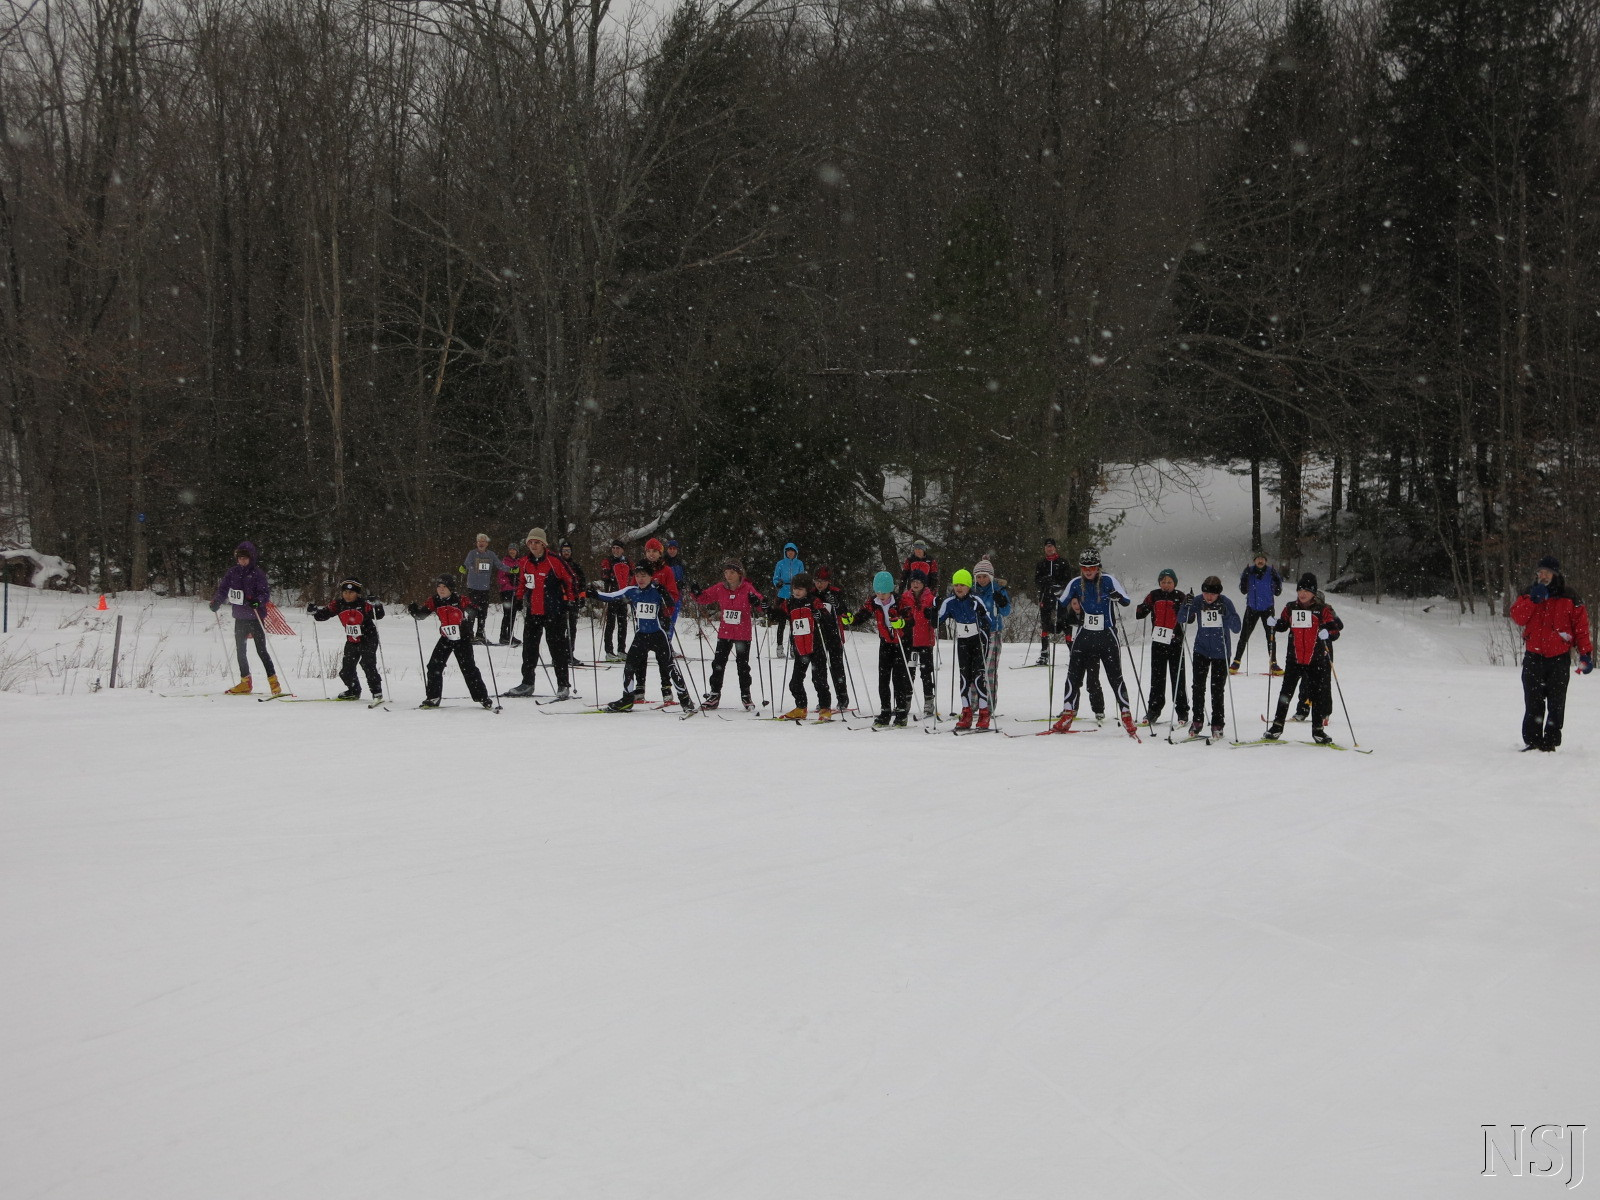 "PA Nordic Championship - Kids - Wilderness Lodge - <span class=""date-display-single"" property=""dc:date"" datatype=""xsd:dateTime"" content=""2014-02-01T00:00:00-05:00"">01 Feb 2014</span> - Naomi Jarvis"